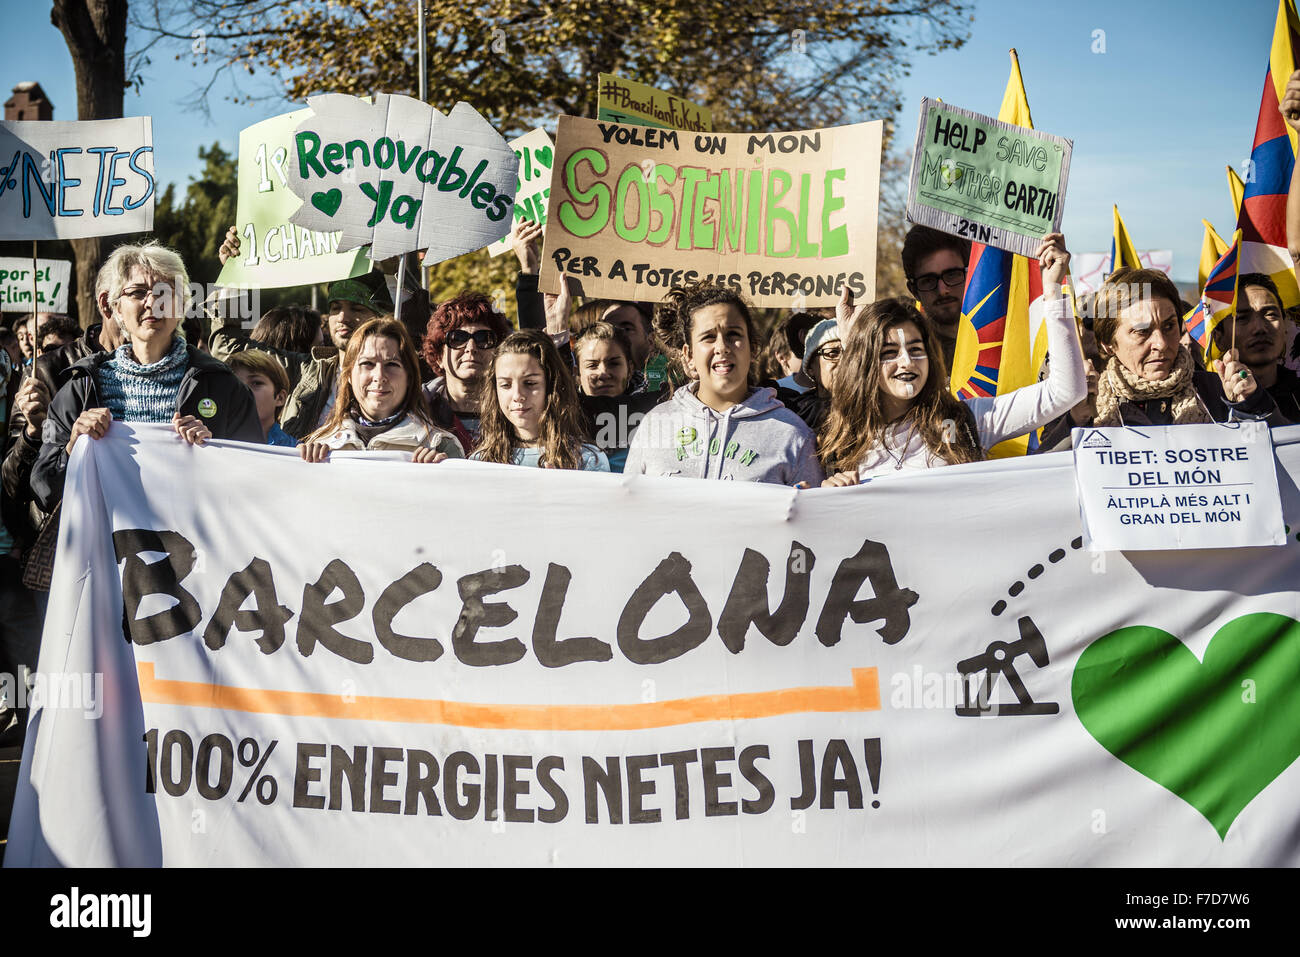 Nov. 29, 2015 - Barcelona, Catalonia, Spain - Demonstrators hold placards and Tibetan flags as they arrive at Ciutadella - Stock Image